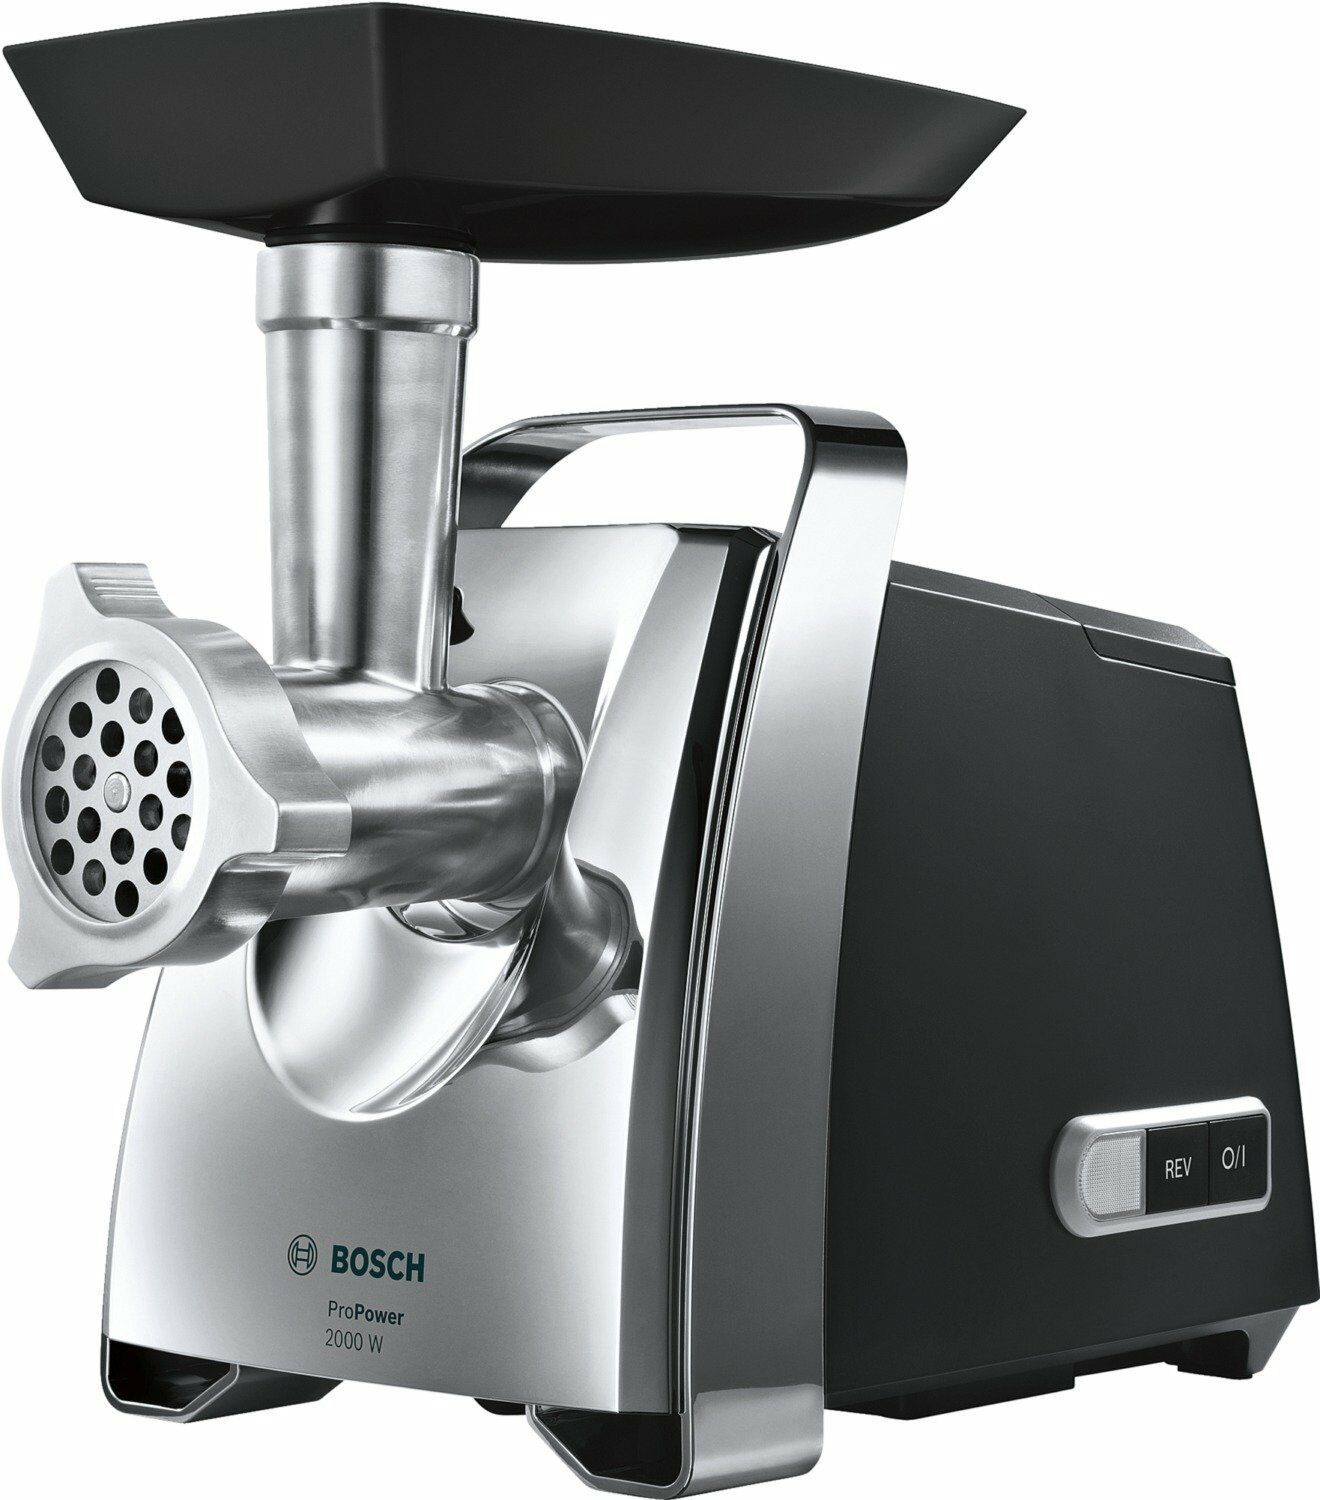 Bosch MFW67440 Mincer of carneclasificacion connection Step anti-slip